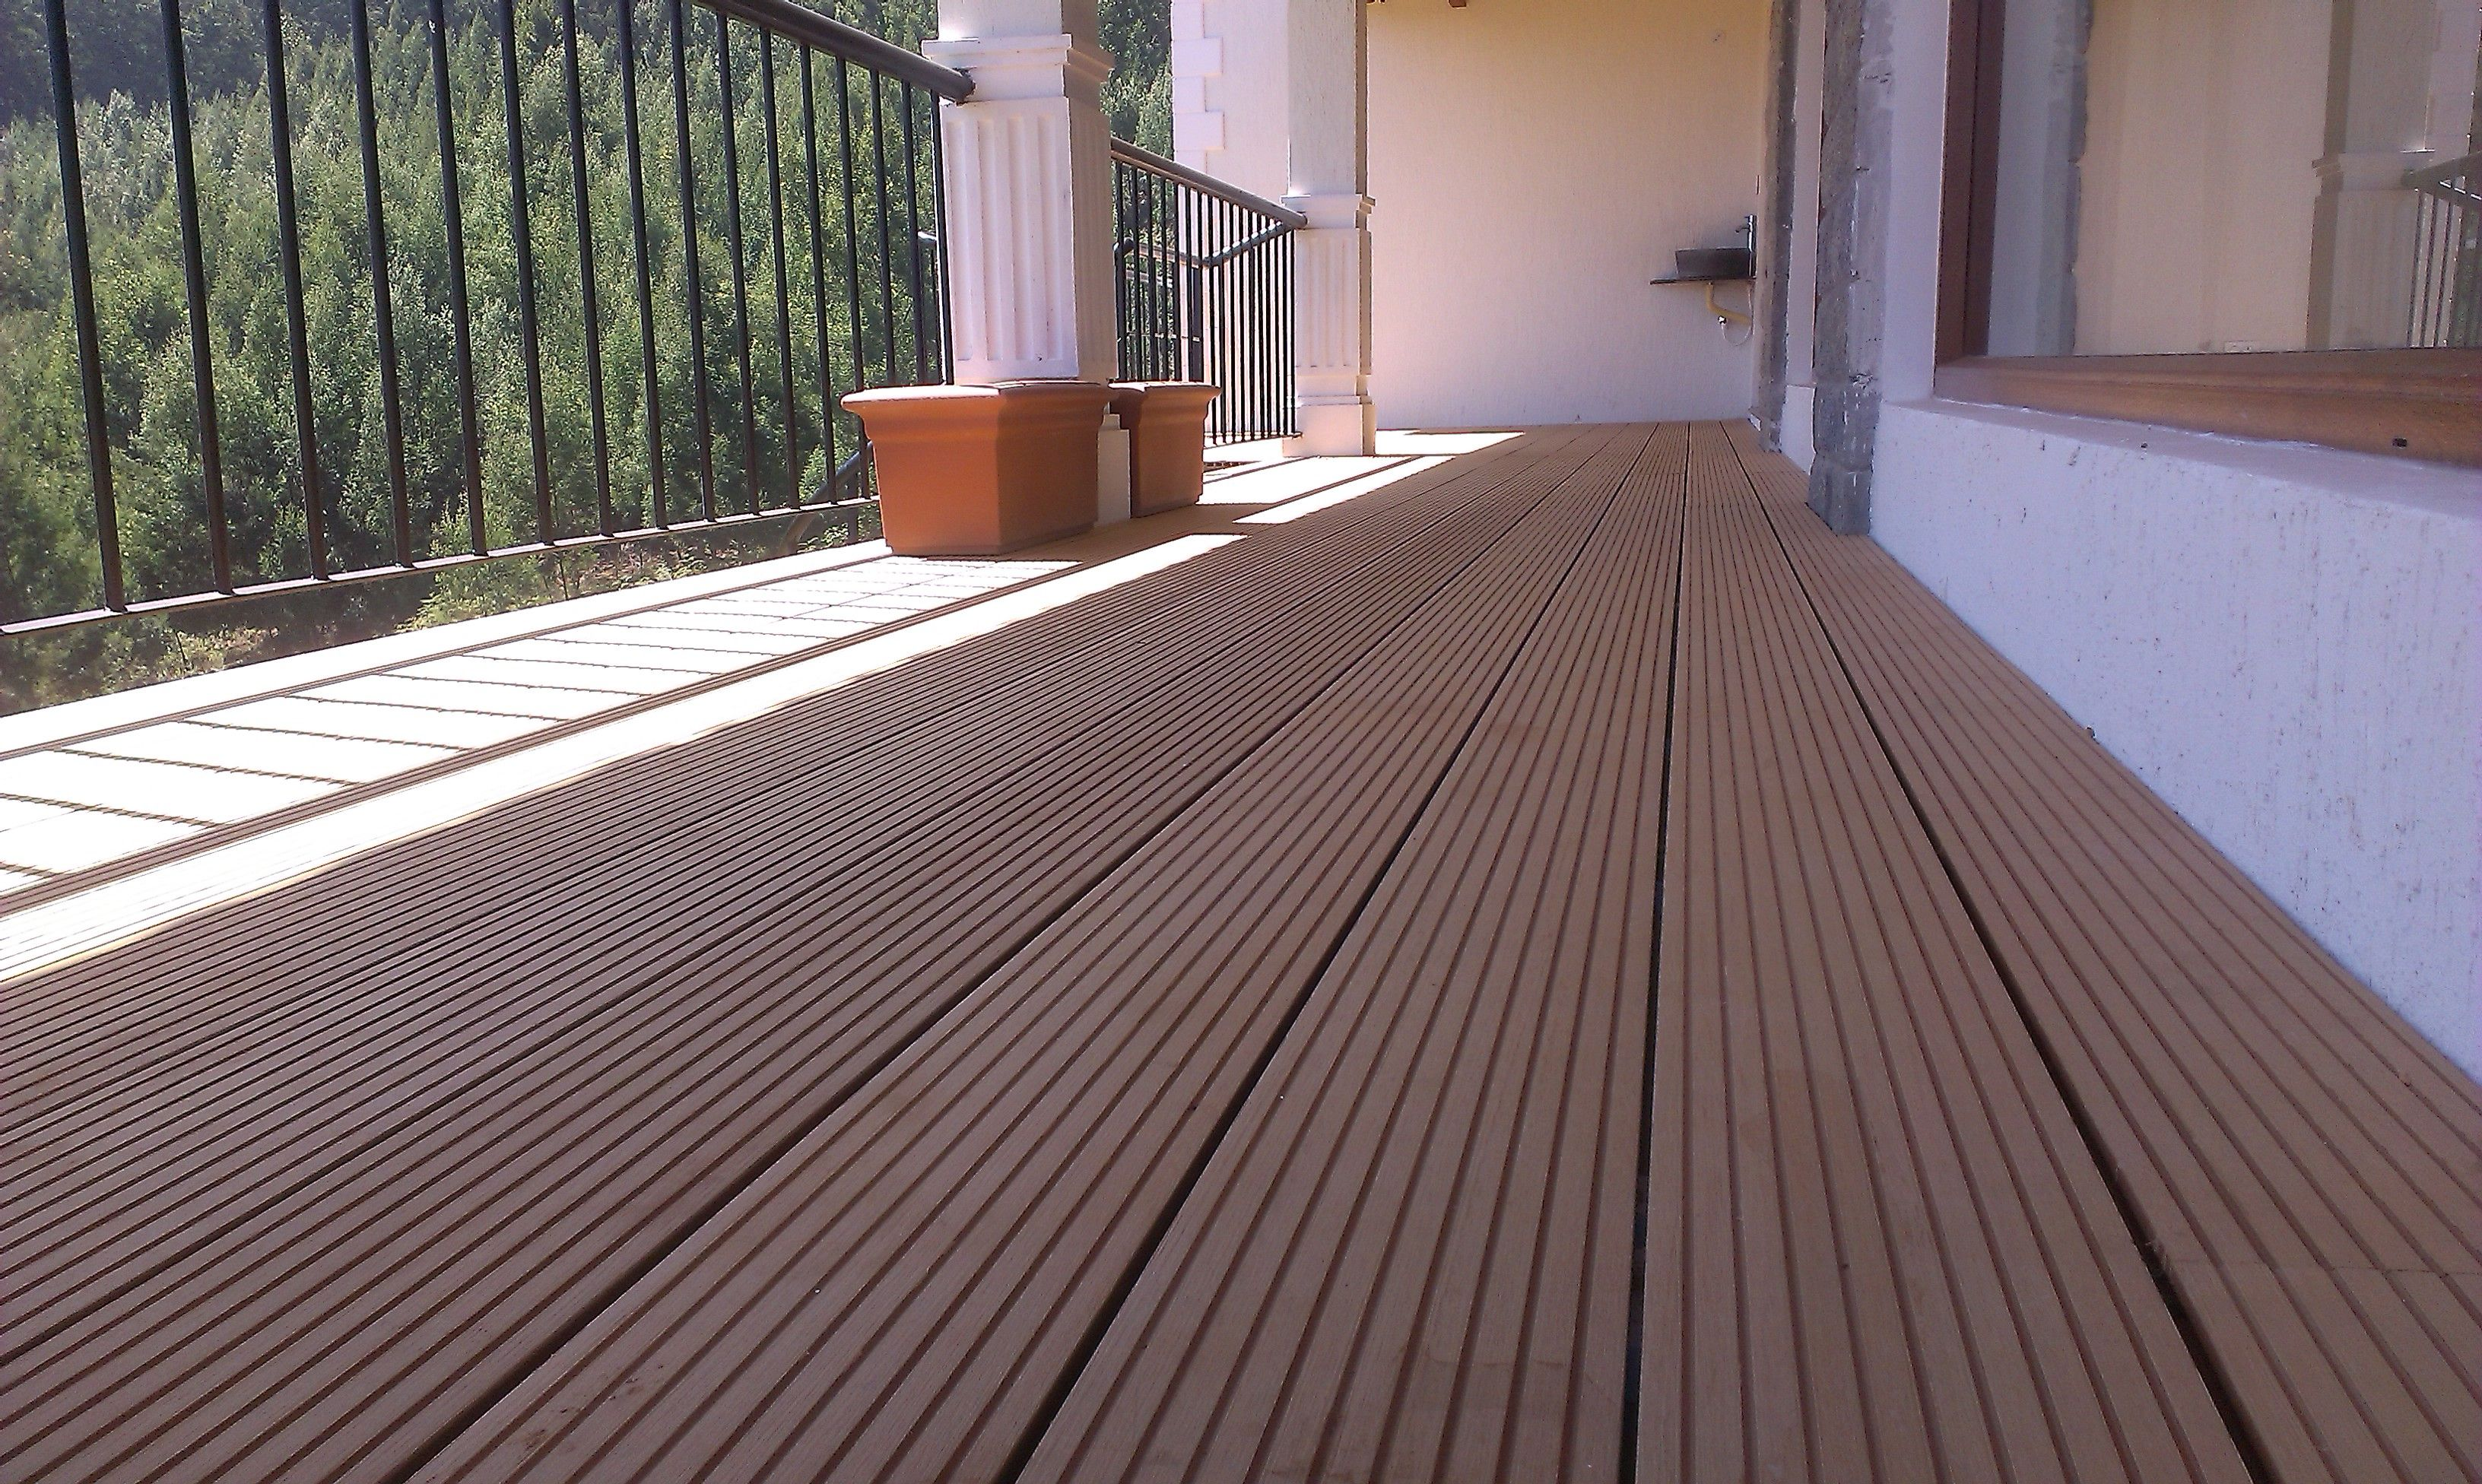 timber teck decking at menards,horizon decking reviews